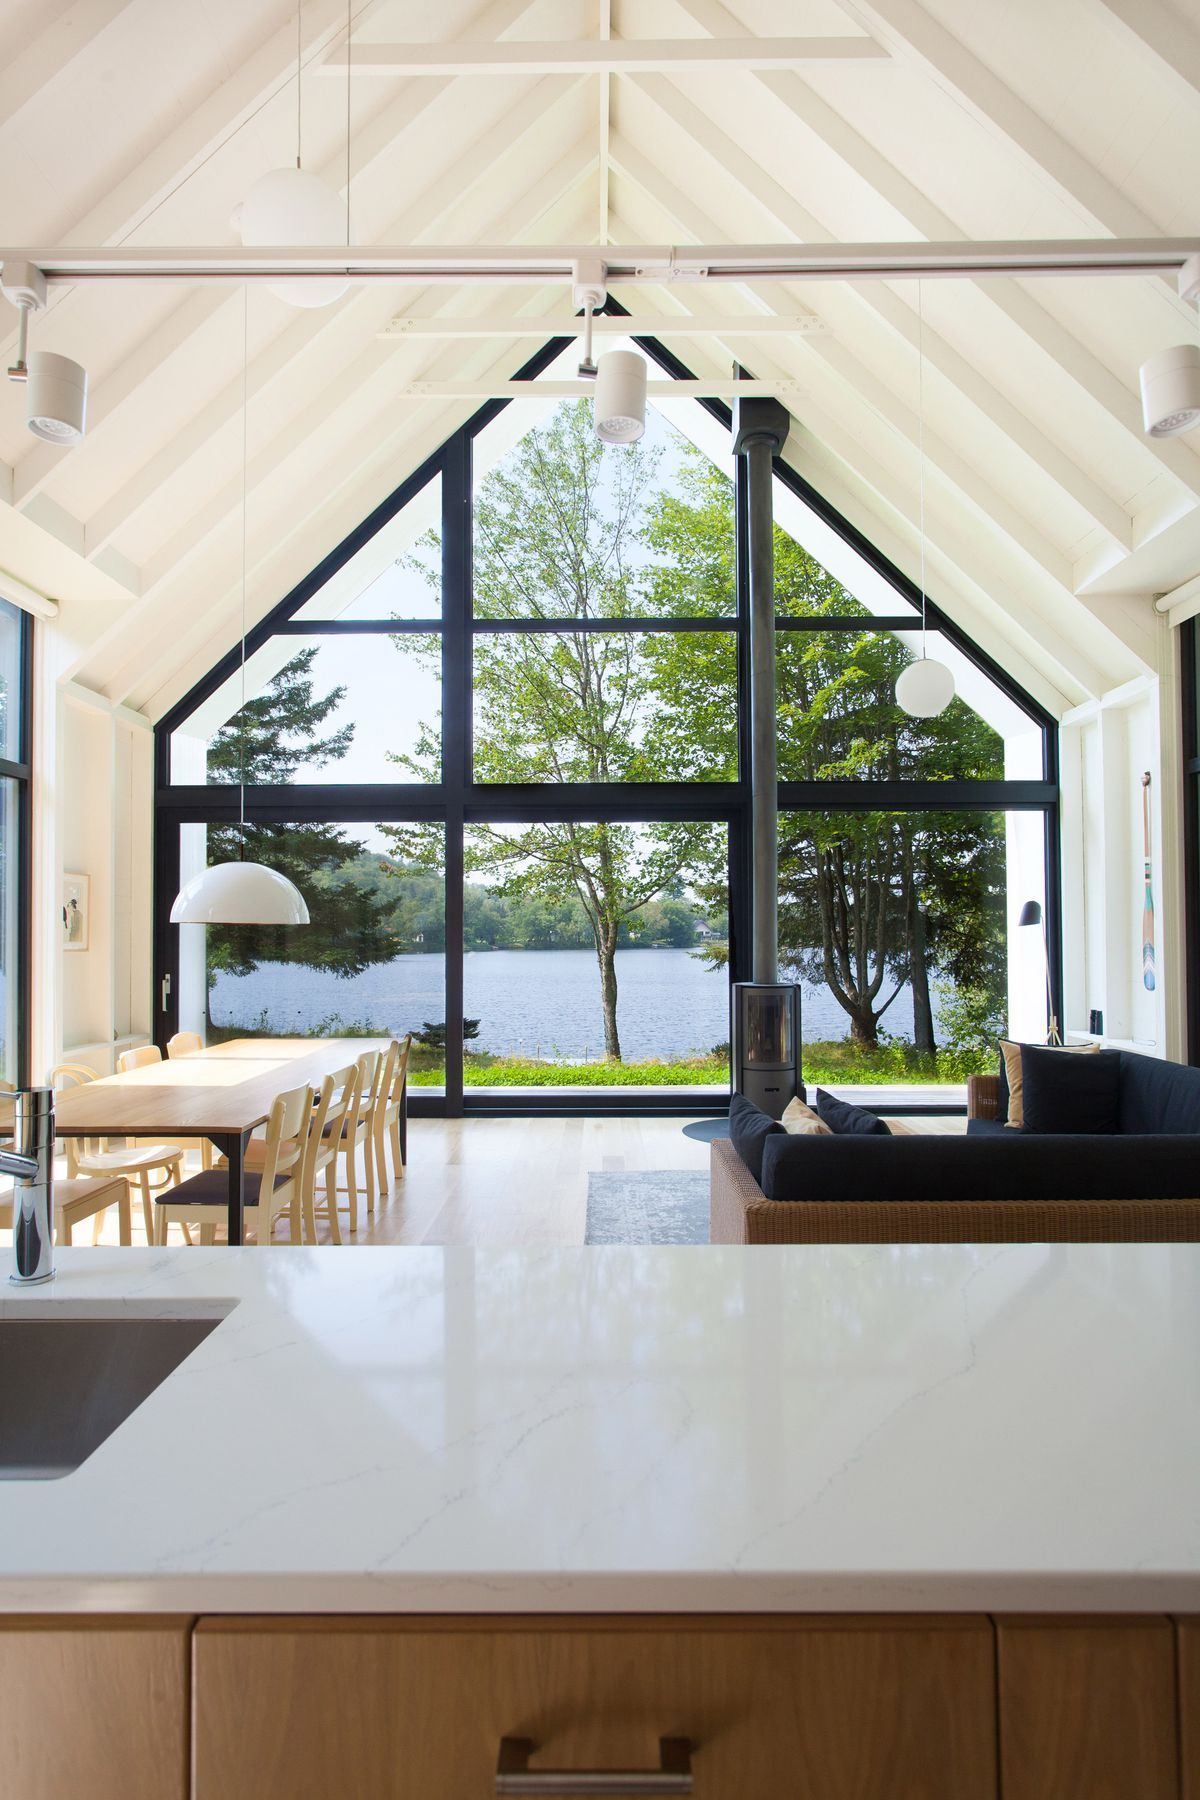 Living room with windows looking onto lake